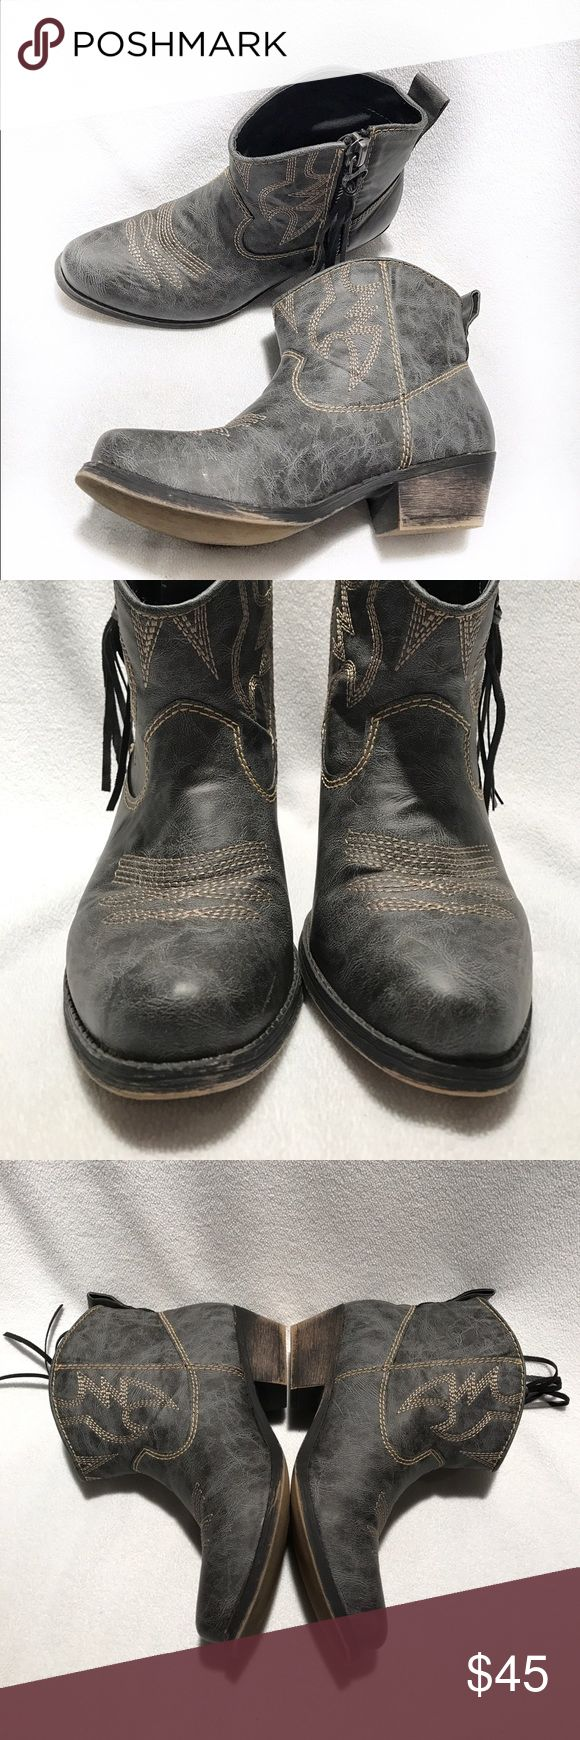 🆕Big Buddha • Gray Distressed Ankle Cowboy Boots Worn | Excellent Condition | Distressed Look | Gray Coloring | Only Sign of Wear on Inside | Fringe Ties on Zippers | Zippers on Both Outside Sides | Hits Ankle |🚫 Trades | More 📸 Upon Request | Ask Any Questions Needed To Help With Decision 🙋🏽| Bundles & Offers Are Welcomed ❤️| Big Buddha Shoes Ankle Boots & Booties